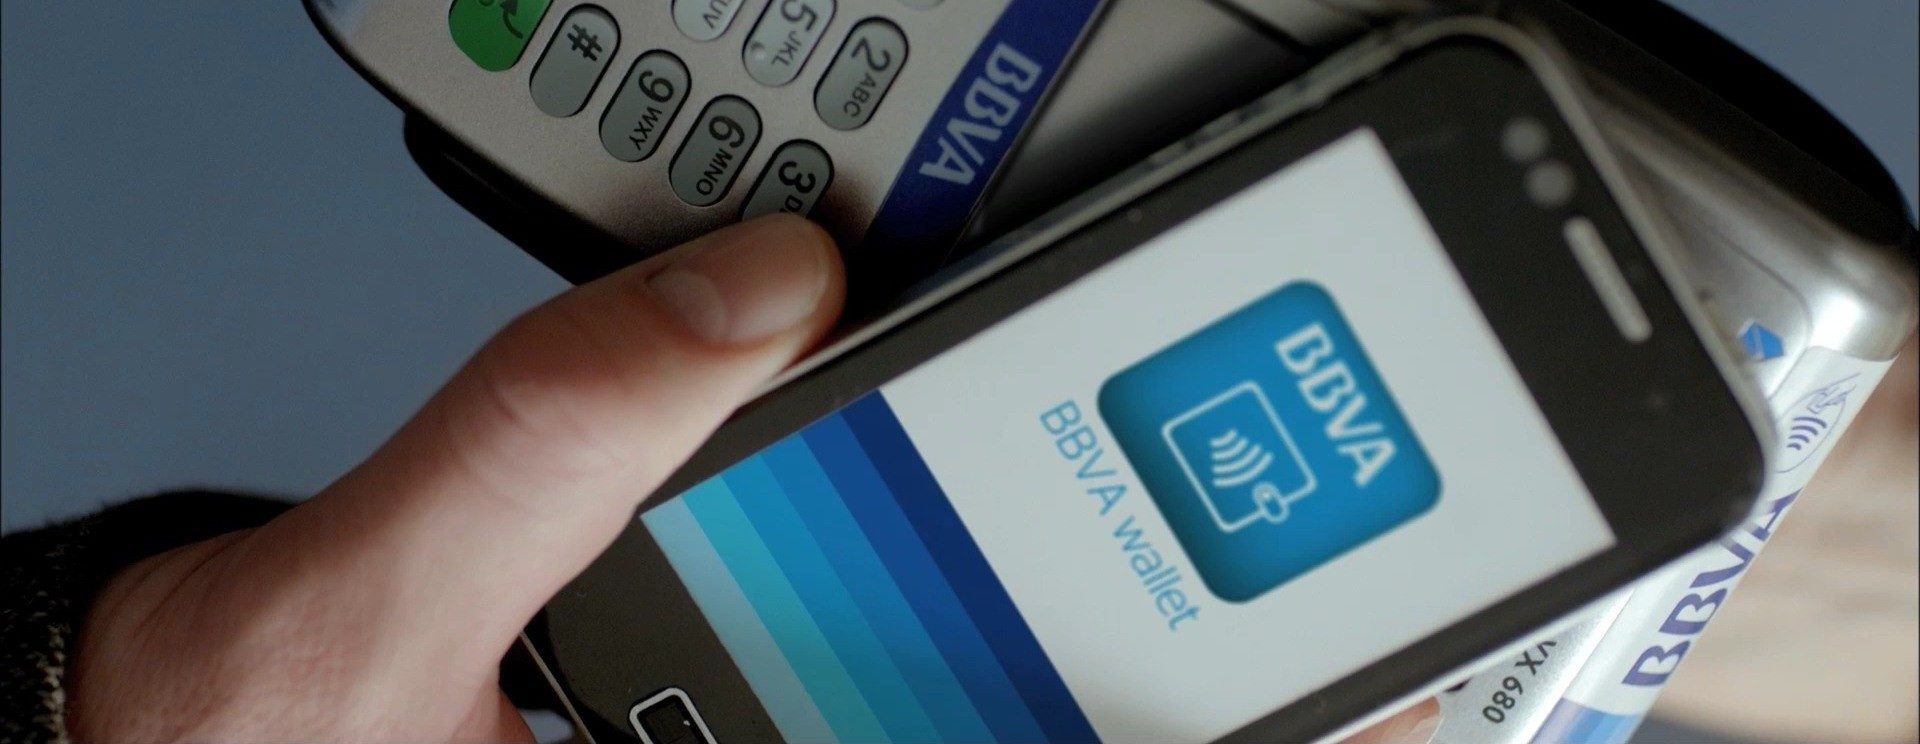 bbva wallet mobile contactless payment visa android apple ios nfc technology